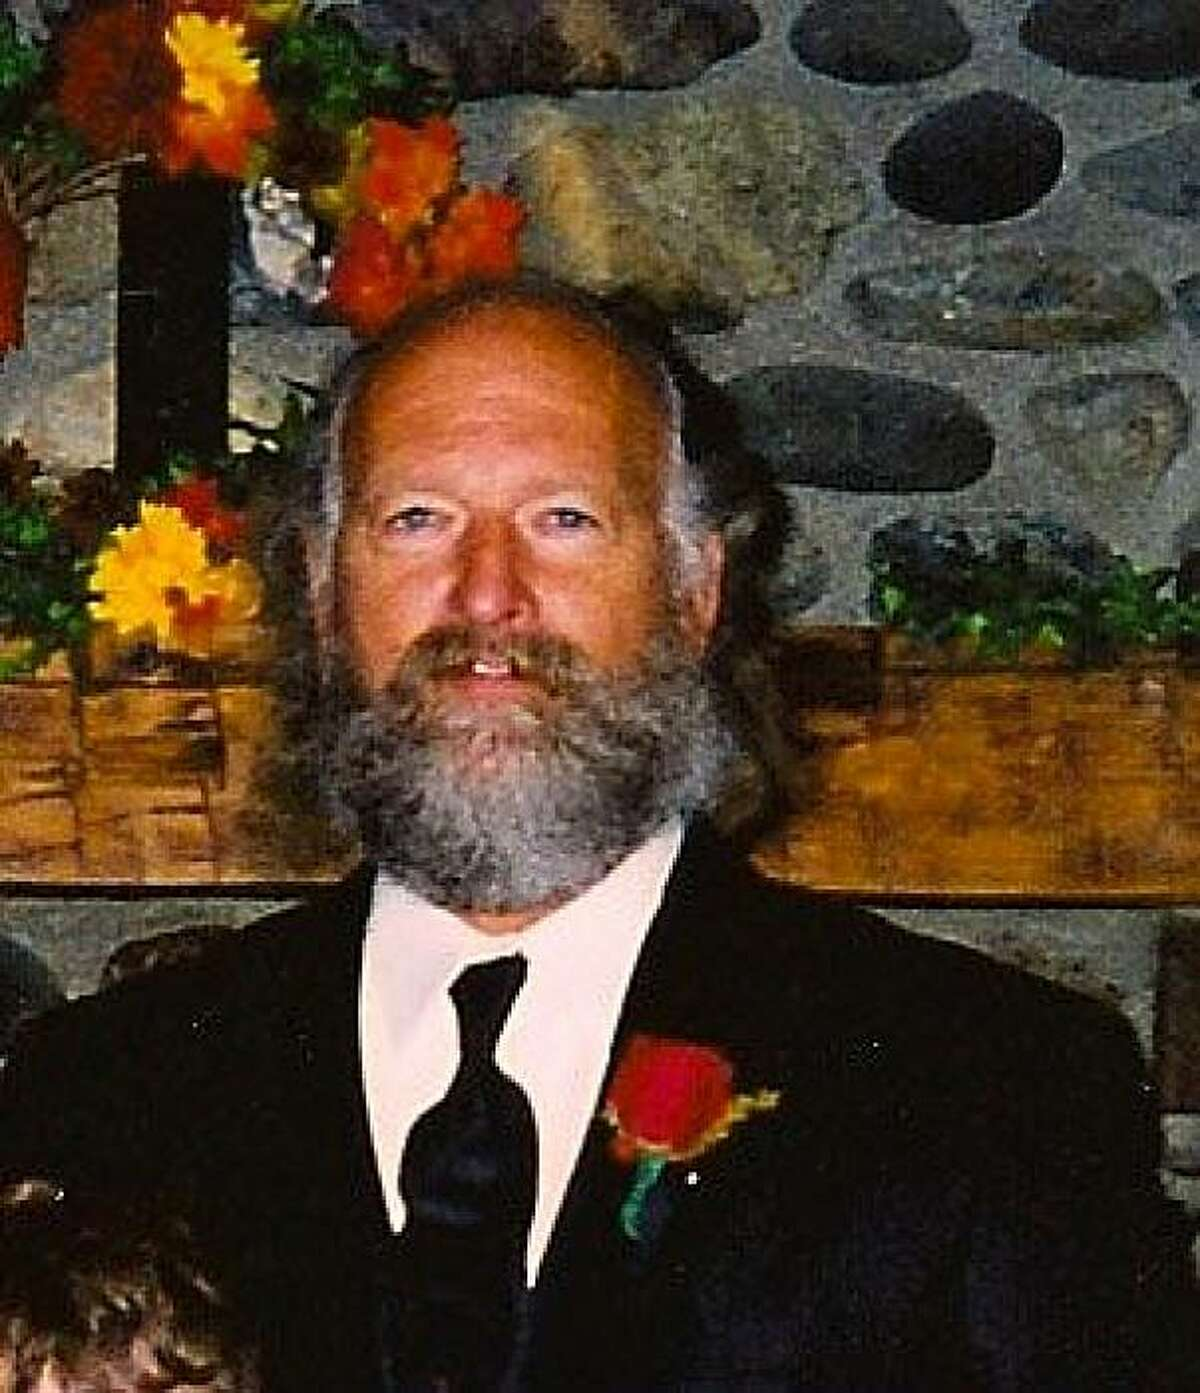 Jim Wightman was found slain at a Hayward car-auction lot on Tuesday, Feb. 2, 2010.